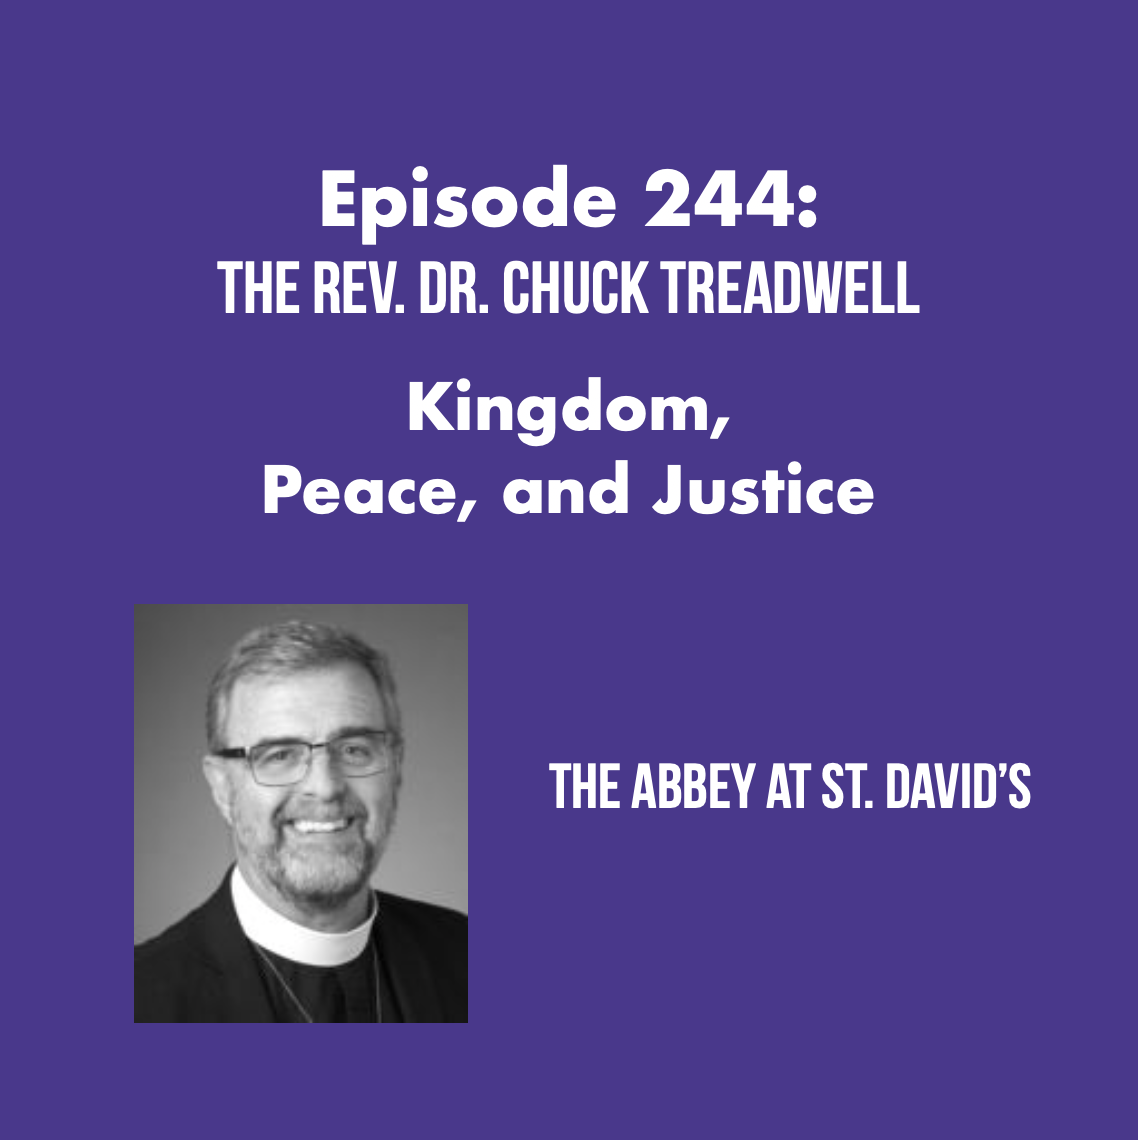 Episode 244: Kingdom, Peace, and Justice with The Rev. Dr. Chuck Treadwell